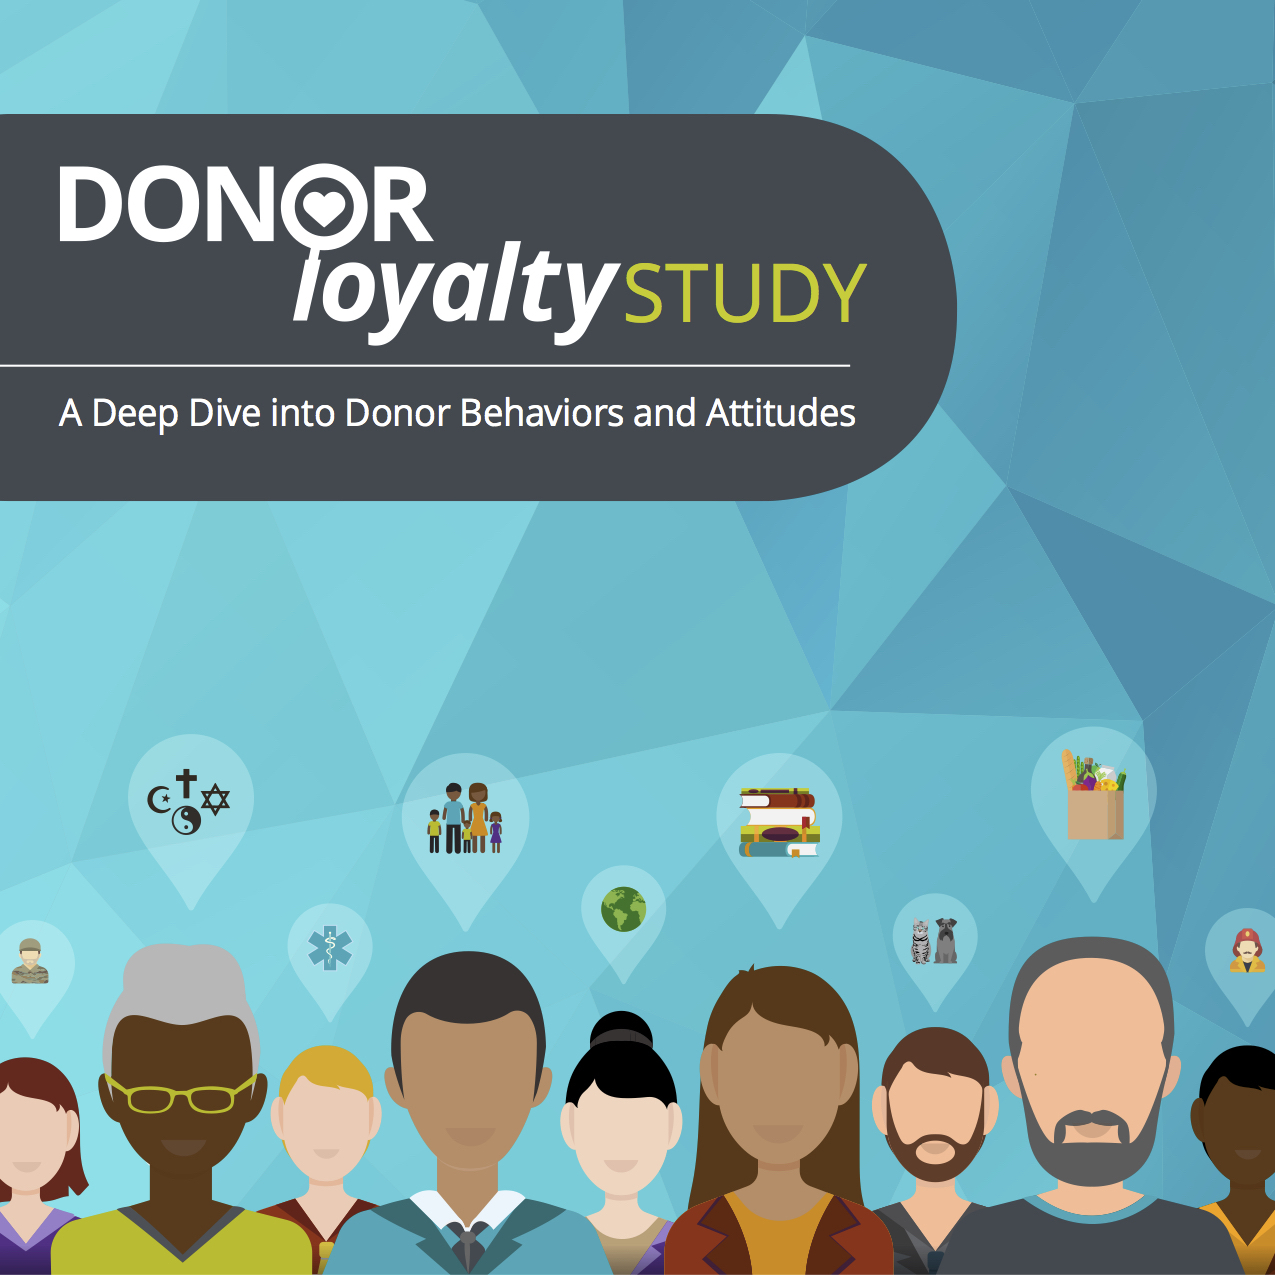 Donor Loyalty Study